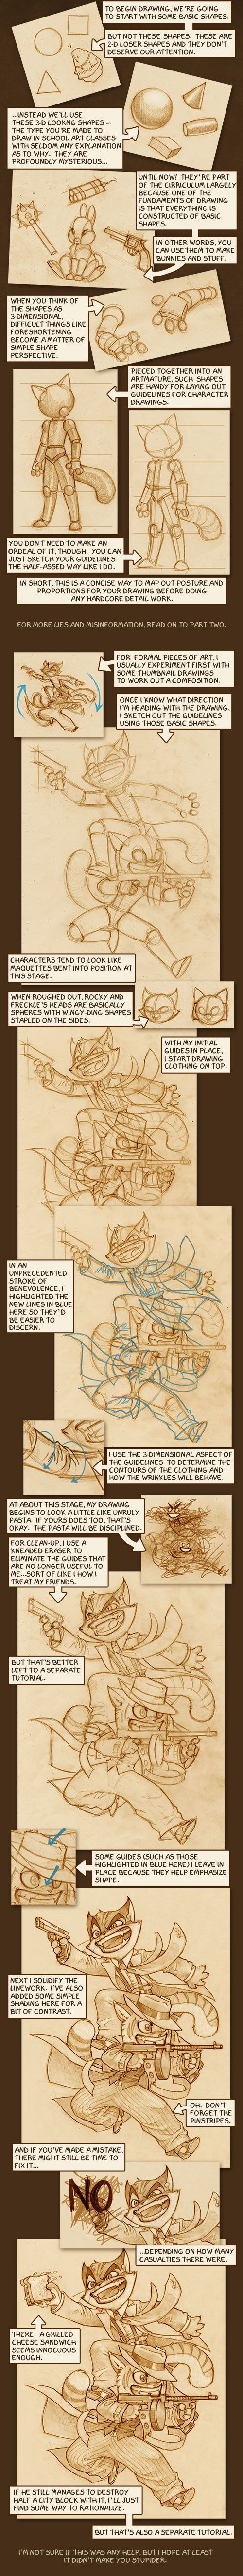 Lackadaisy How-to-Draw. Starring 3-D shapes, maquettes, and unruly spaghetti.